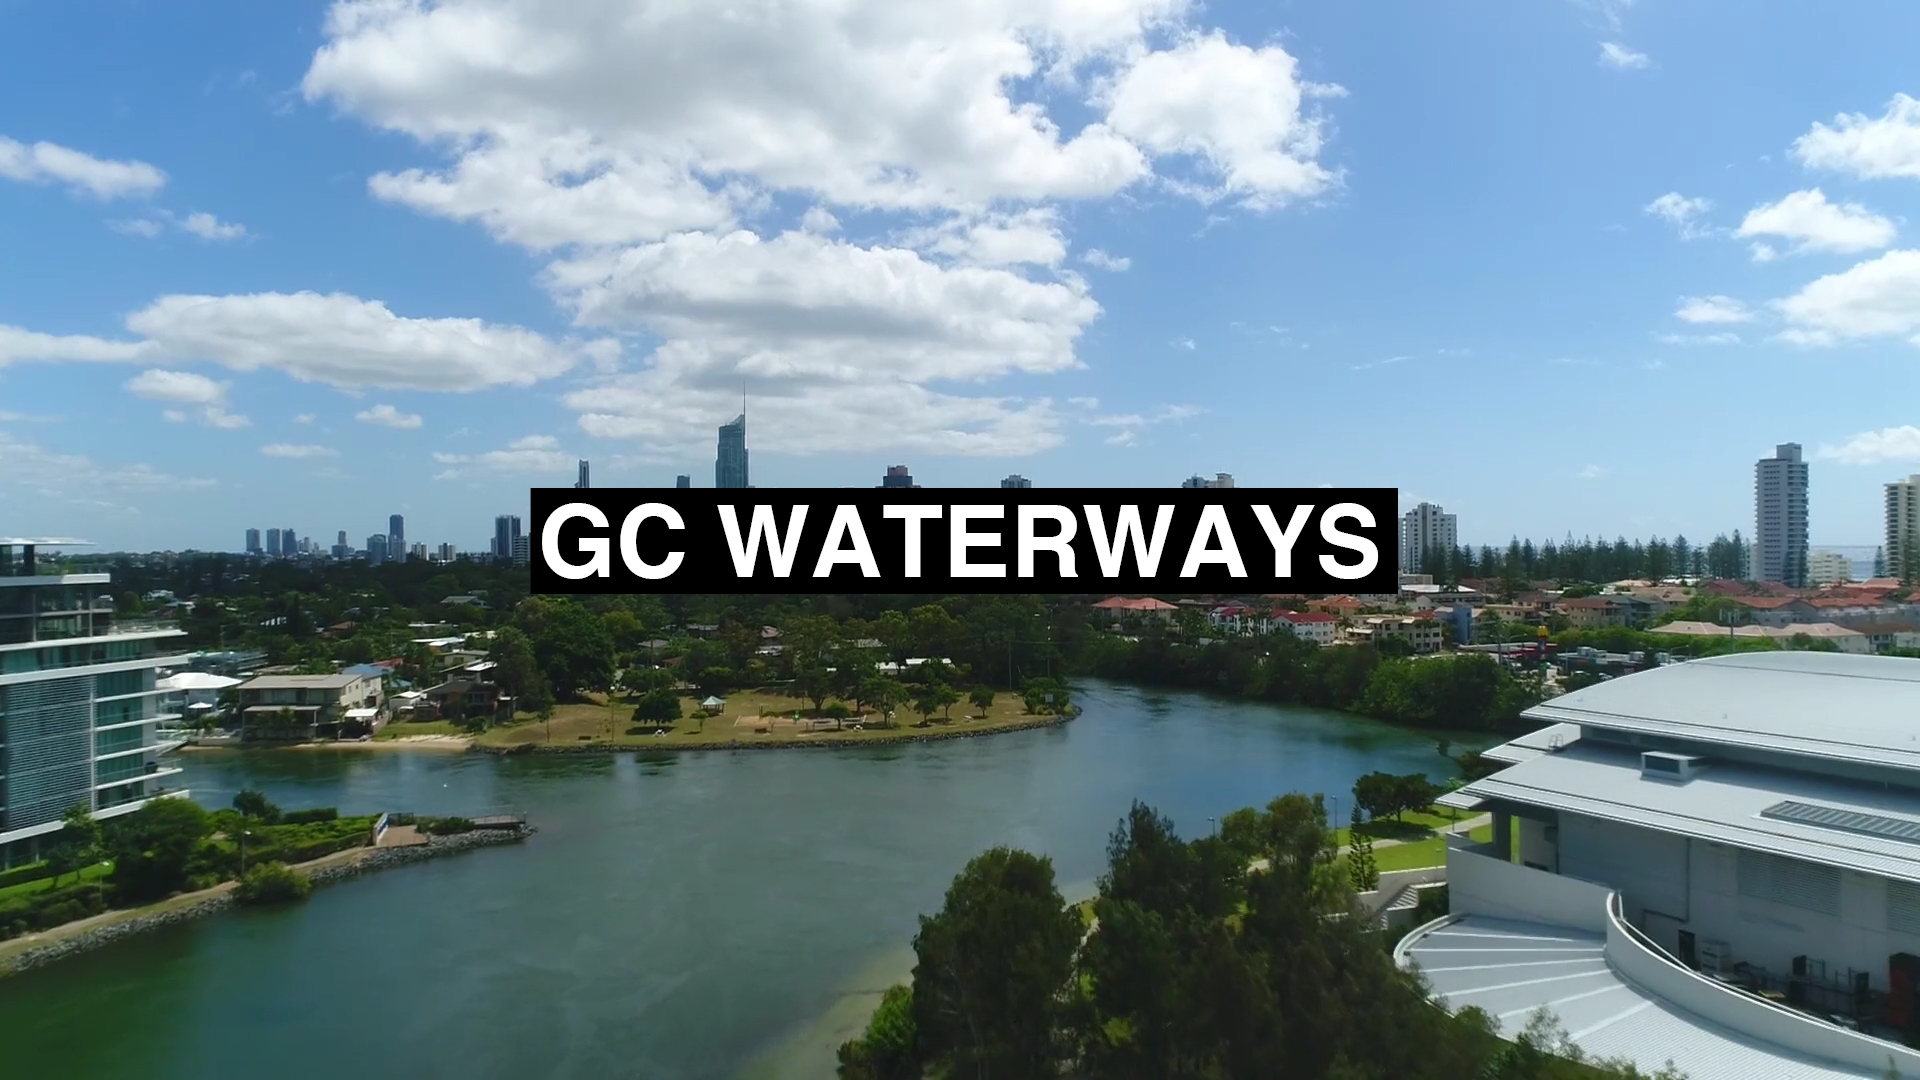 gc waterways.jpg